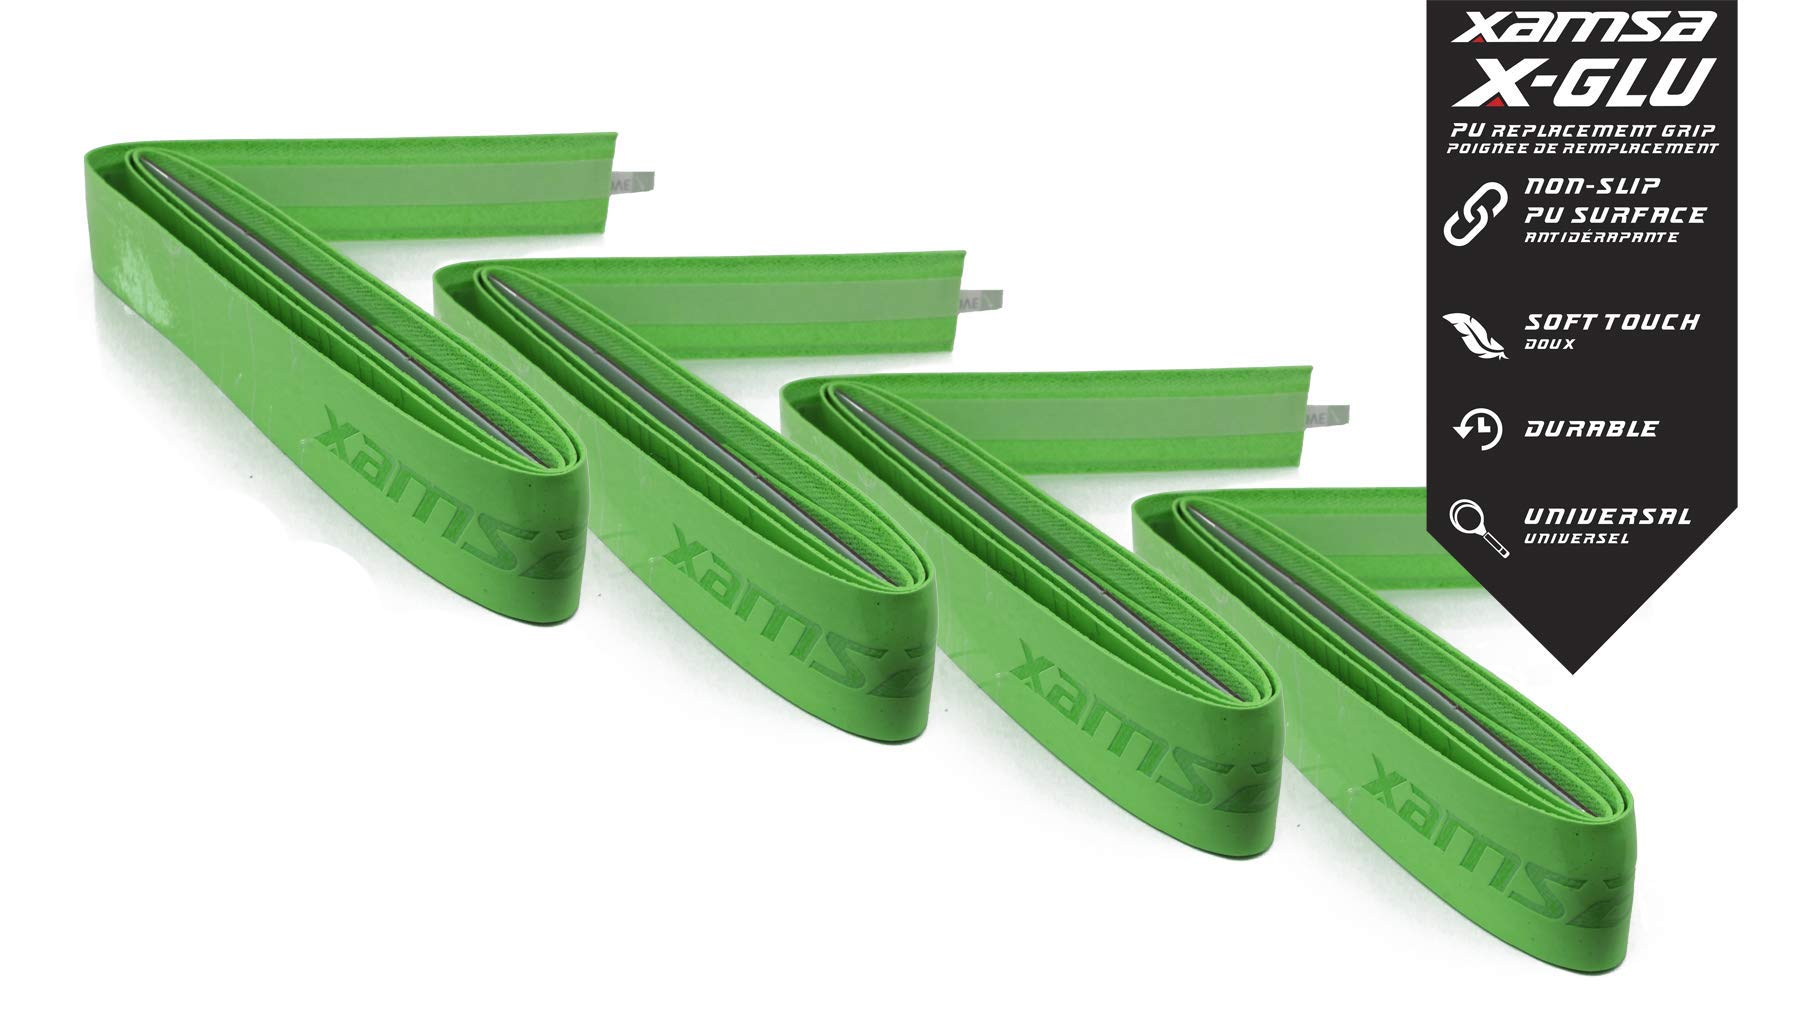 4-Pack of Xamsa X-GLU Replacement Grip - Green/Lime